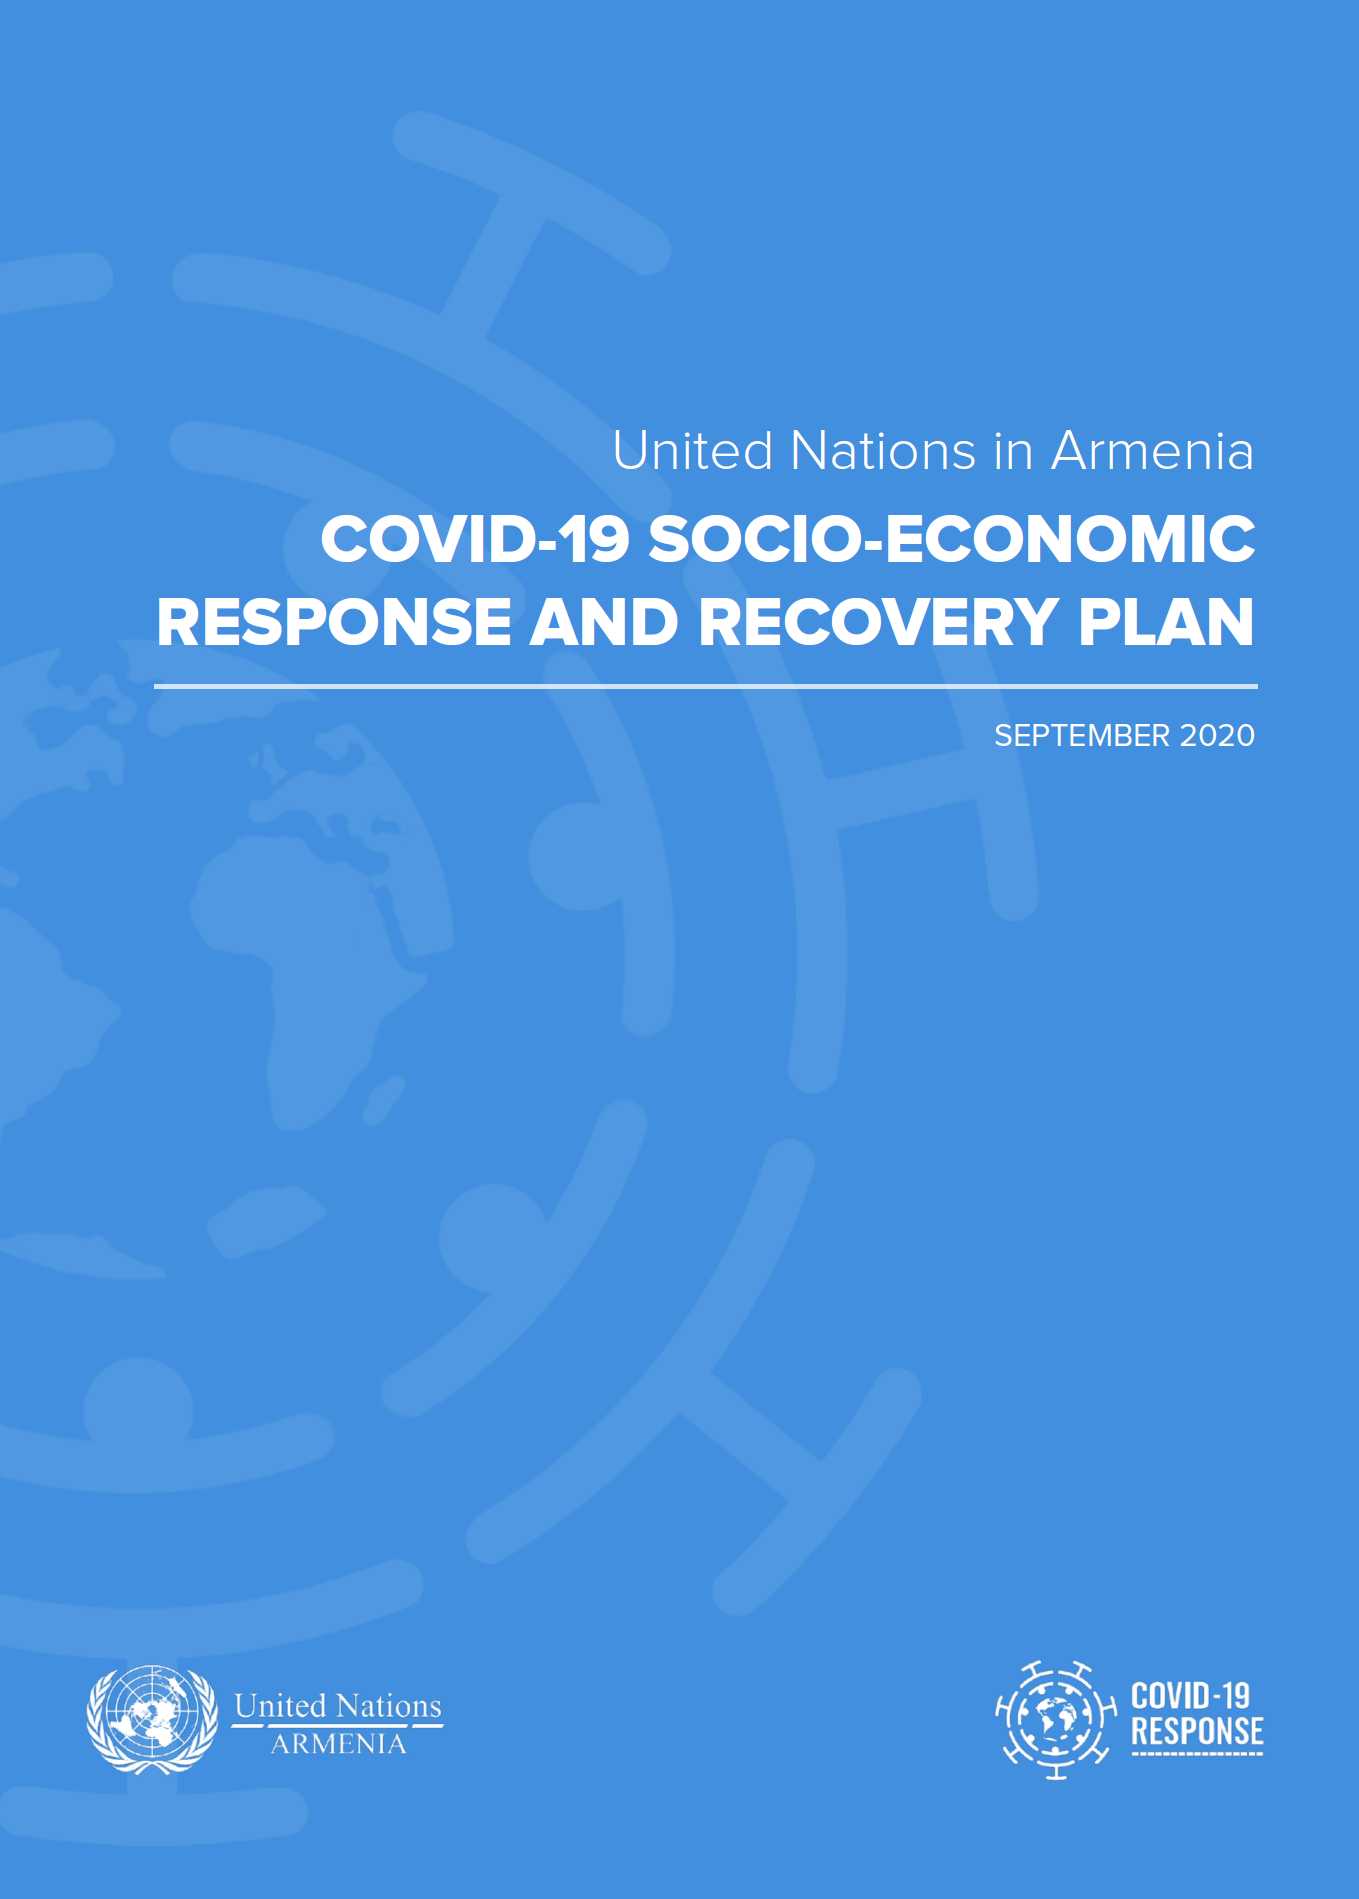 Cover page of the UN Armenia COVID-19 Socio-Economic Response and Recovery Plan